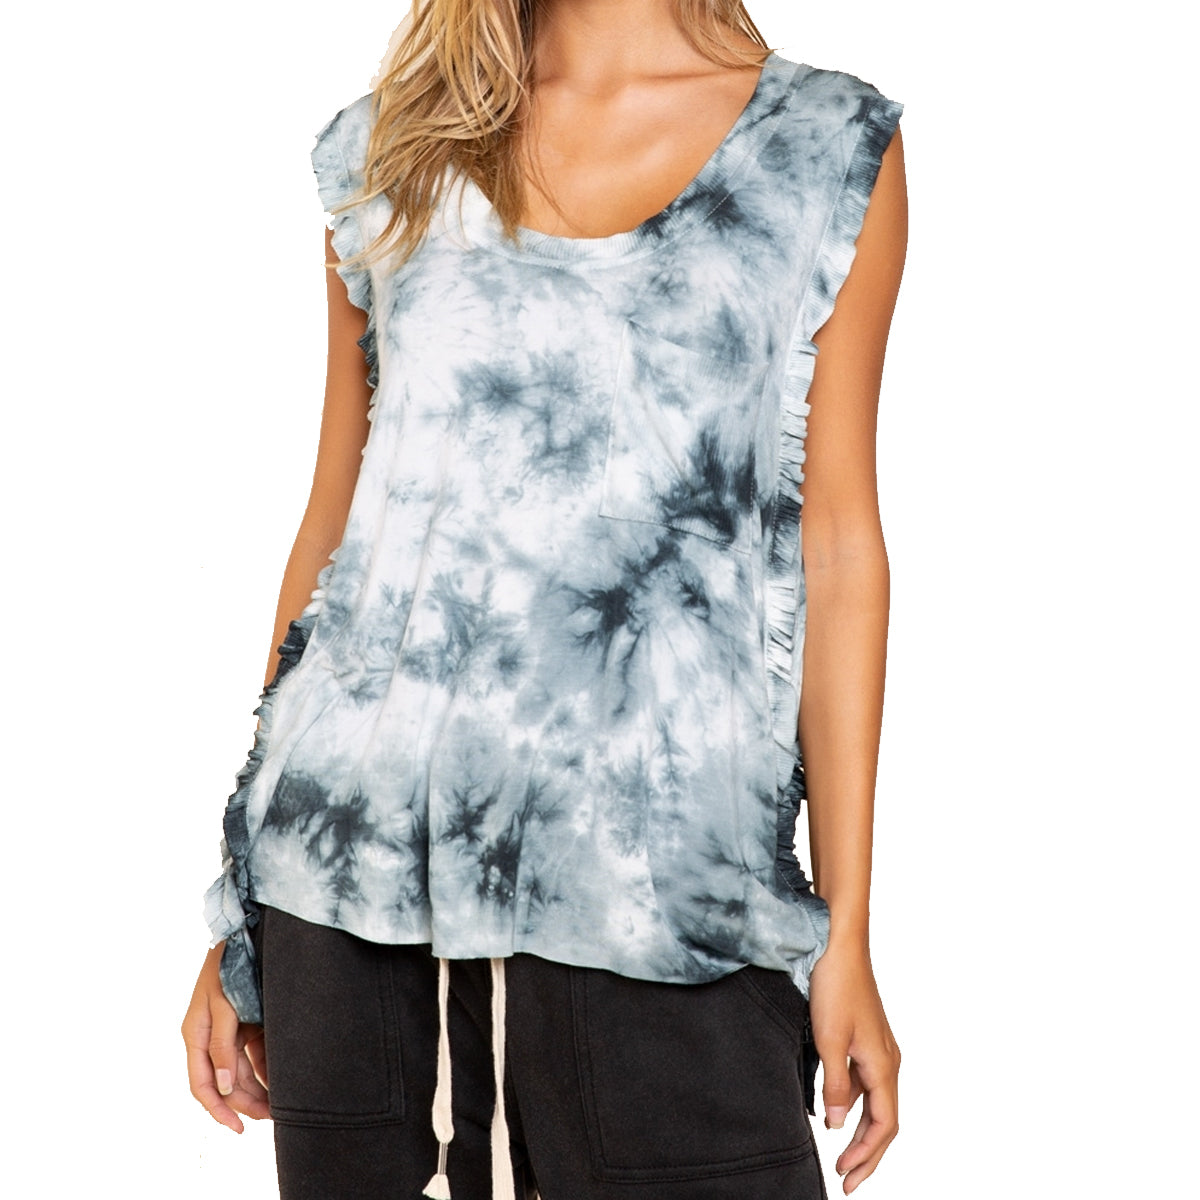 Pol Clothing Women's Feminine Swirl of Splash Knit Top - Indigo Galaxy Blend